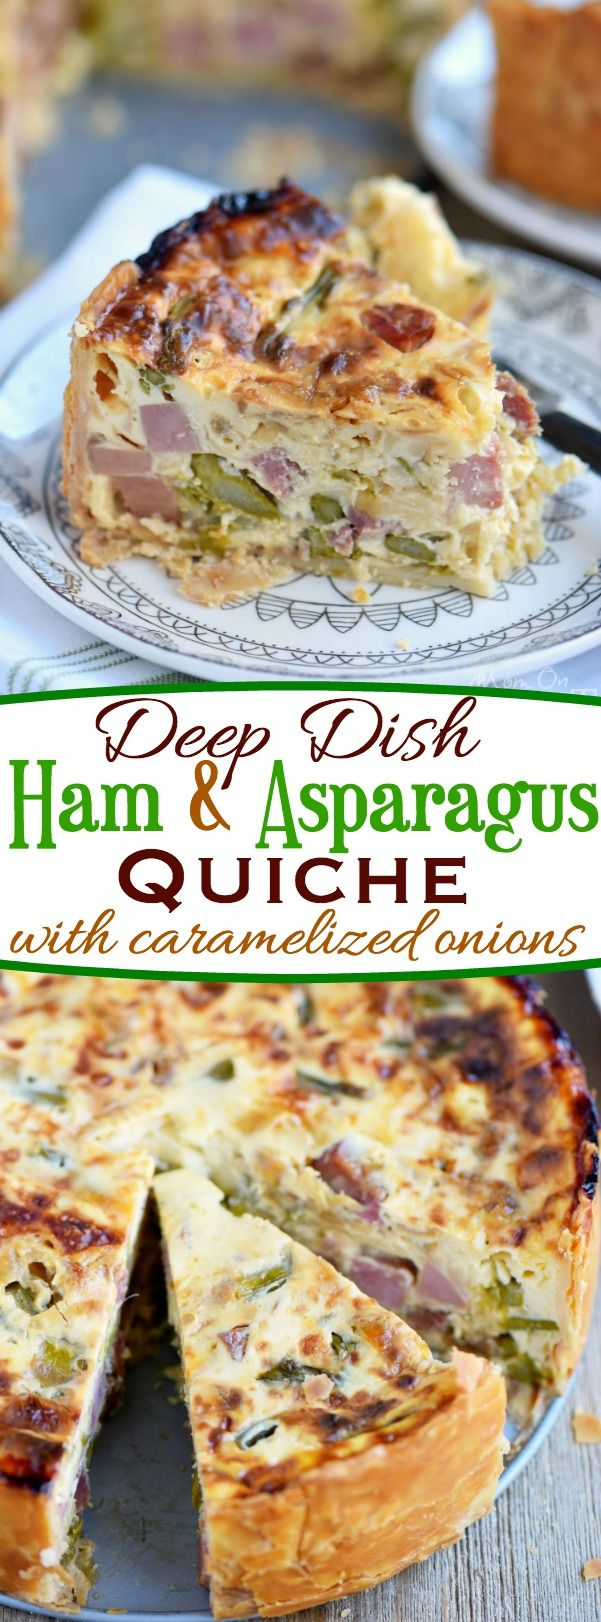 This Deep Dish Ham and Asparagus Quiche with caramelized onions is the perfect addition to your holiday brunch menu! Make it the day before and serve cold or room temperature - both ways are delicious! Also makes a hearty dinner! // Mom On Timeout: